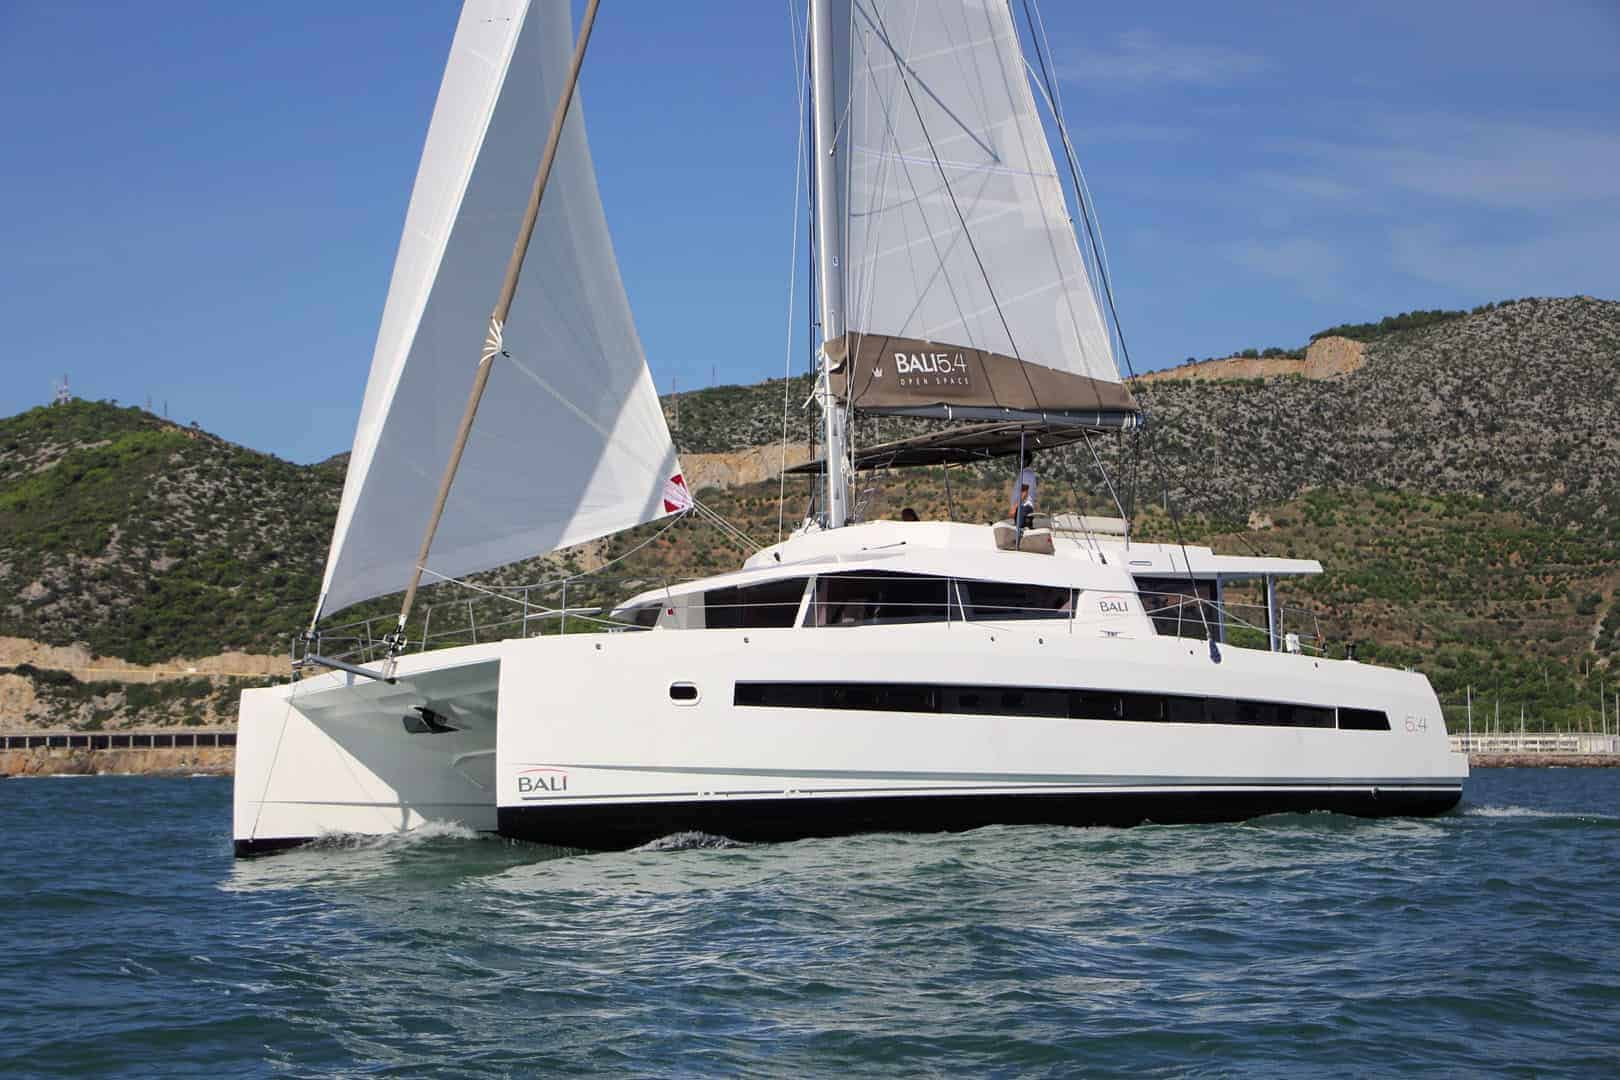 Yacht Bali 5.4 on the ocean with wind in its sail